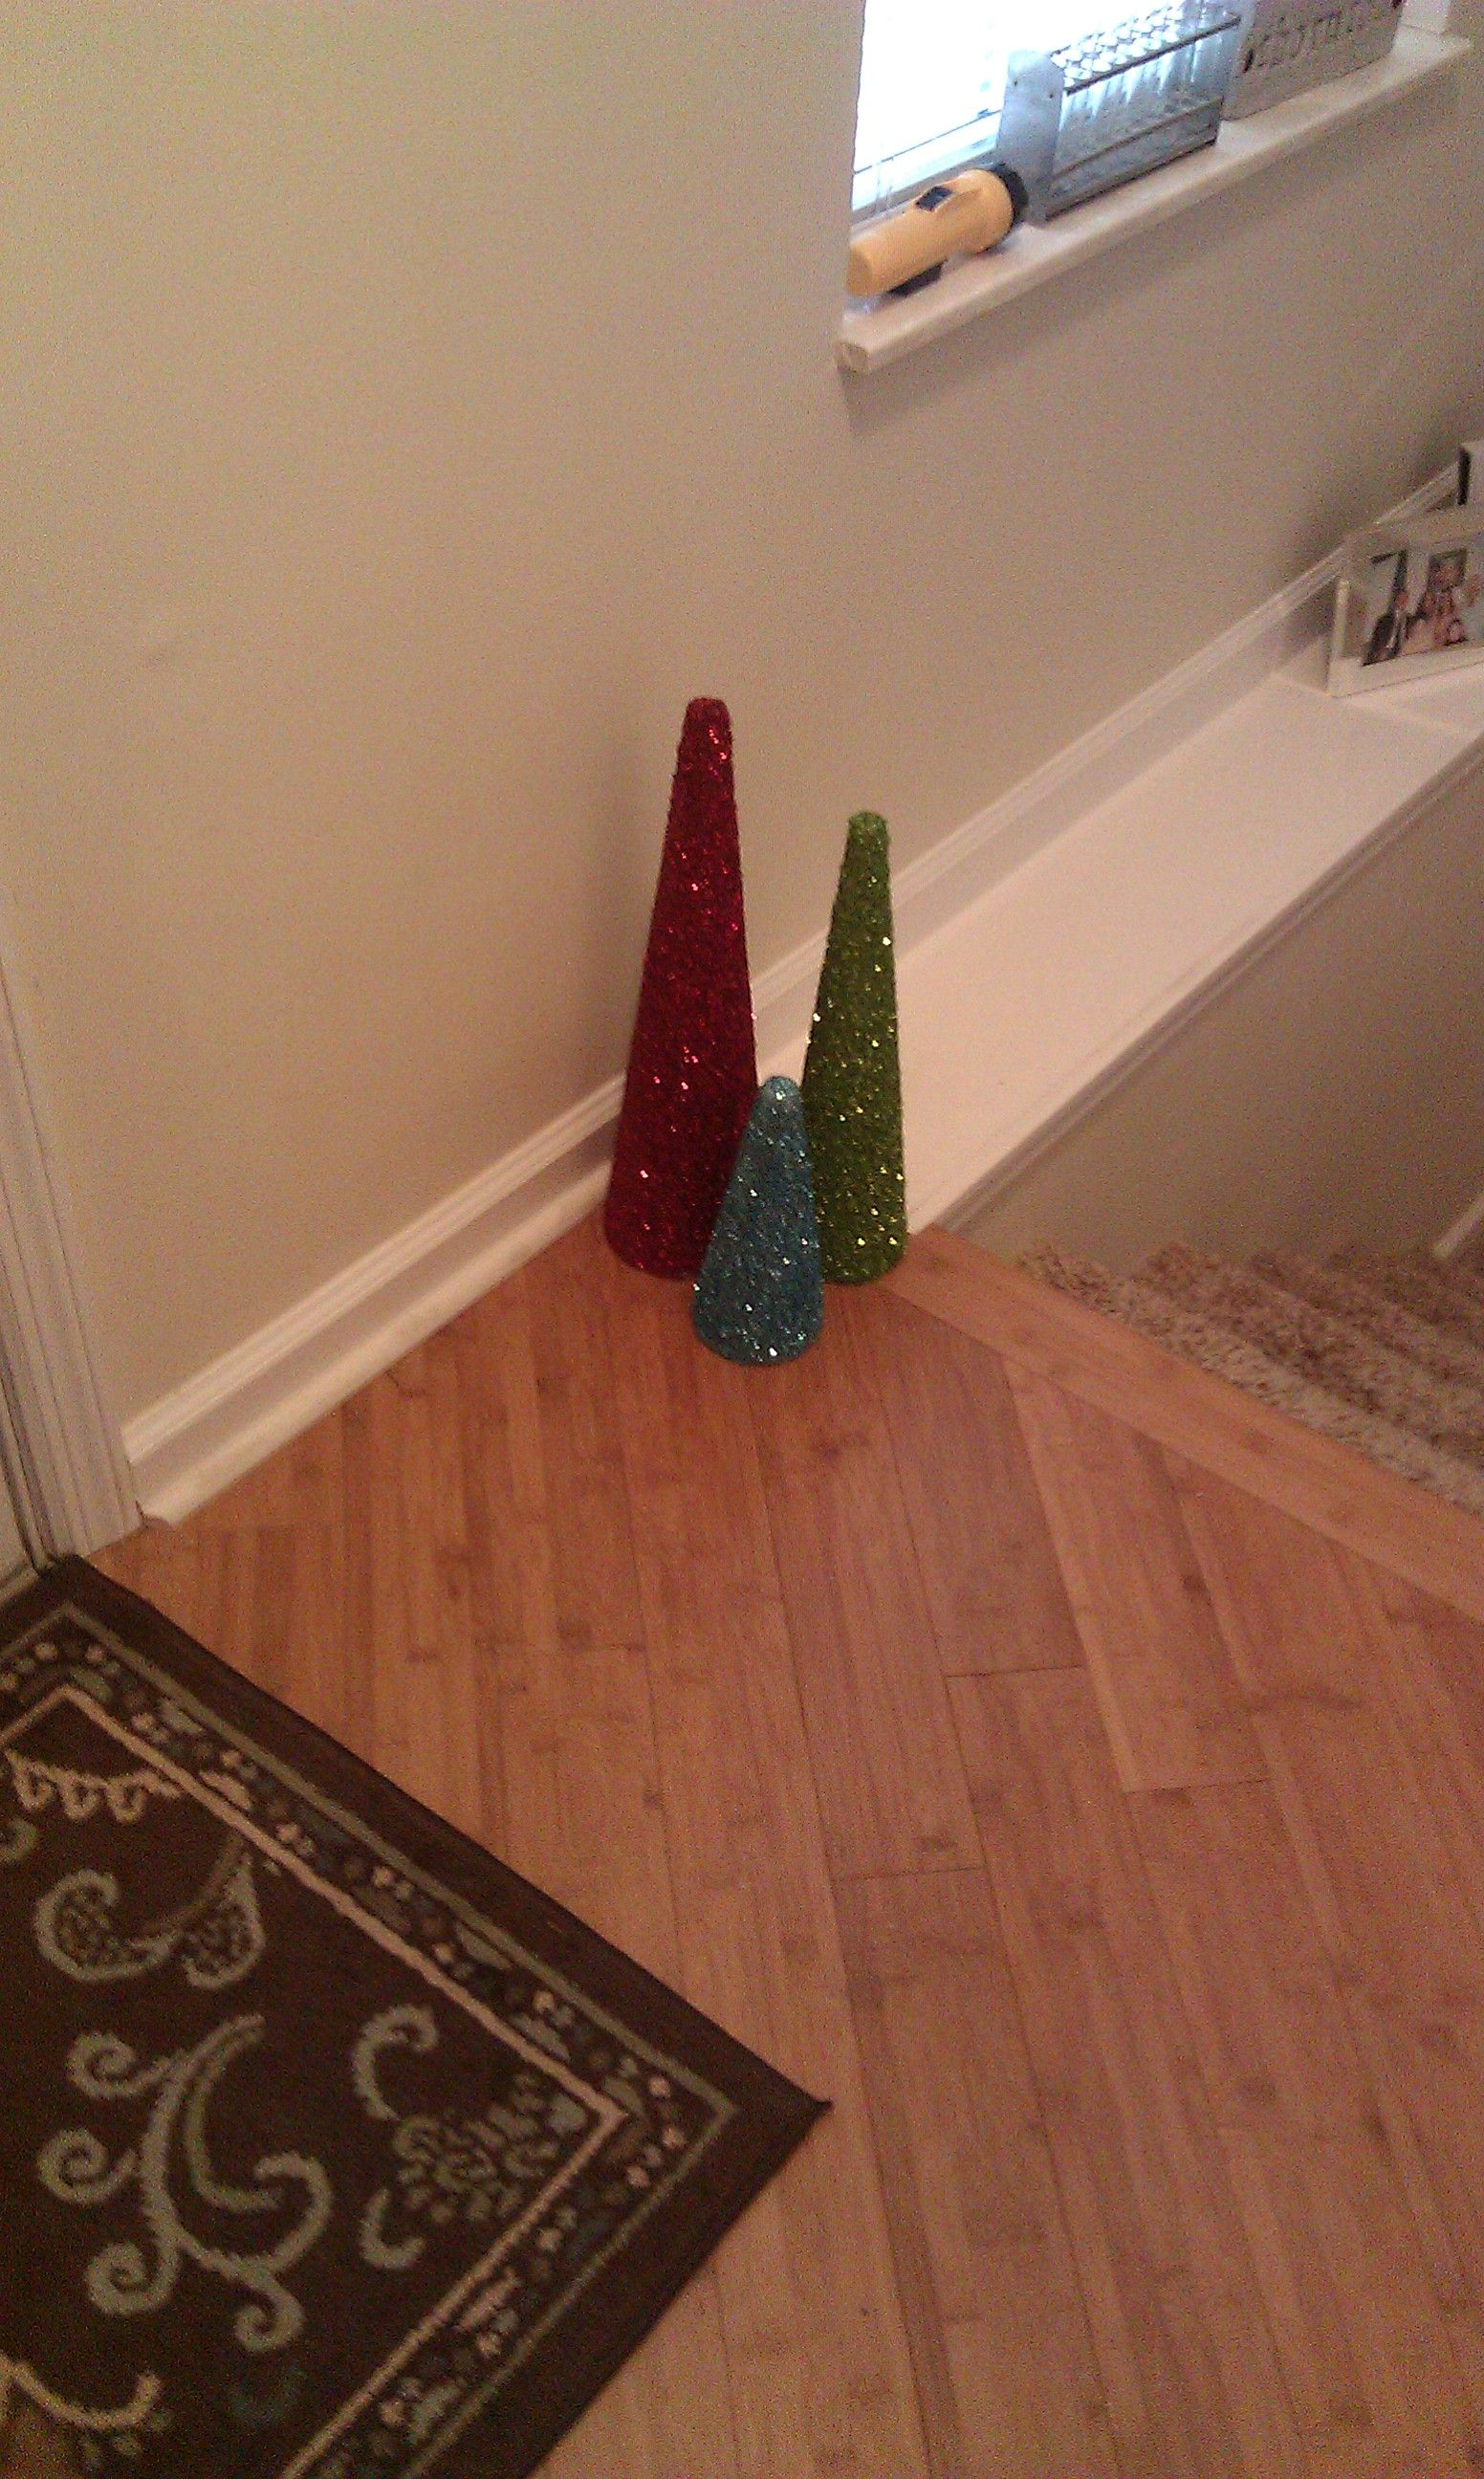 diy christmas glitter trees...just buy the styrofoam cones, spray adhesive glue all over, and cover with your fave glitter!